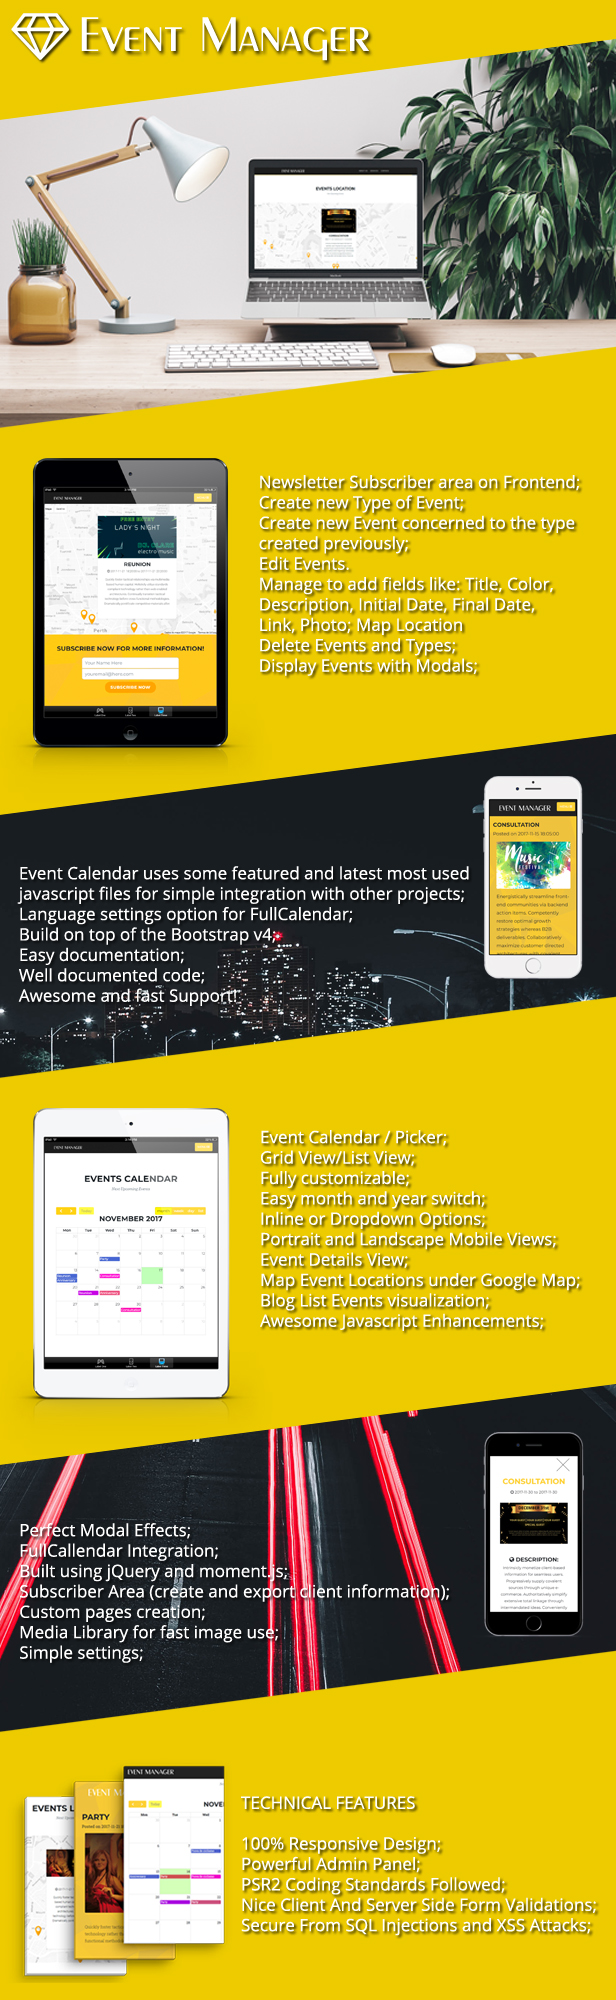 Free Download Event Manager PHP Script + Admin panel